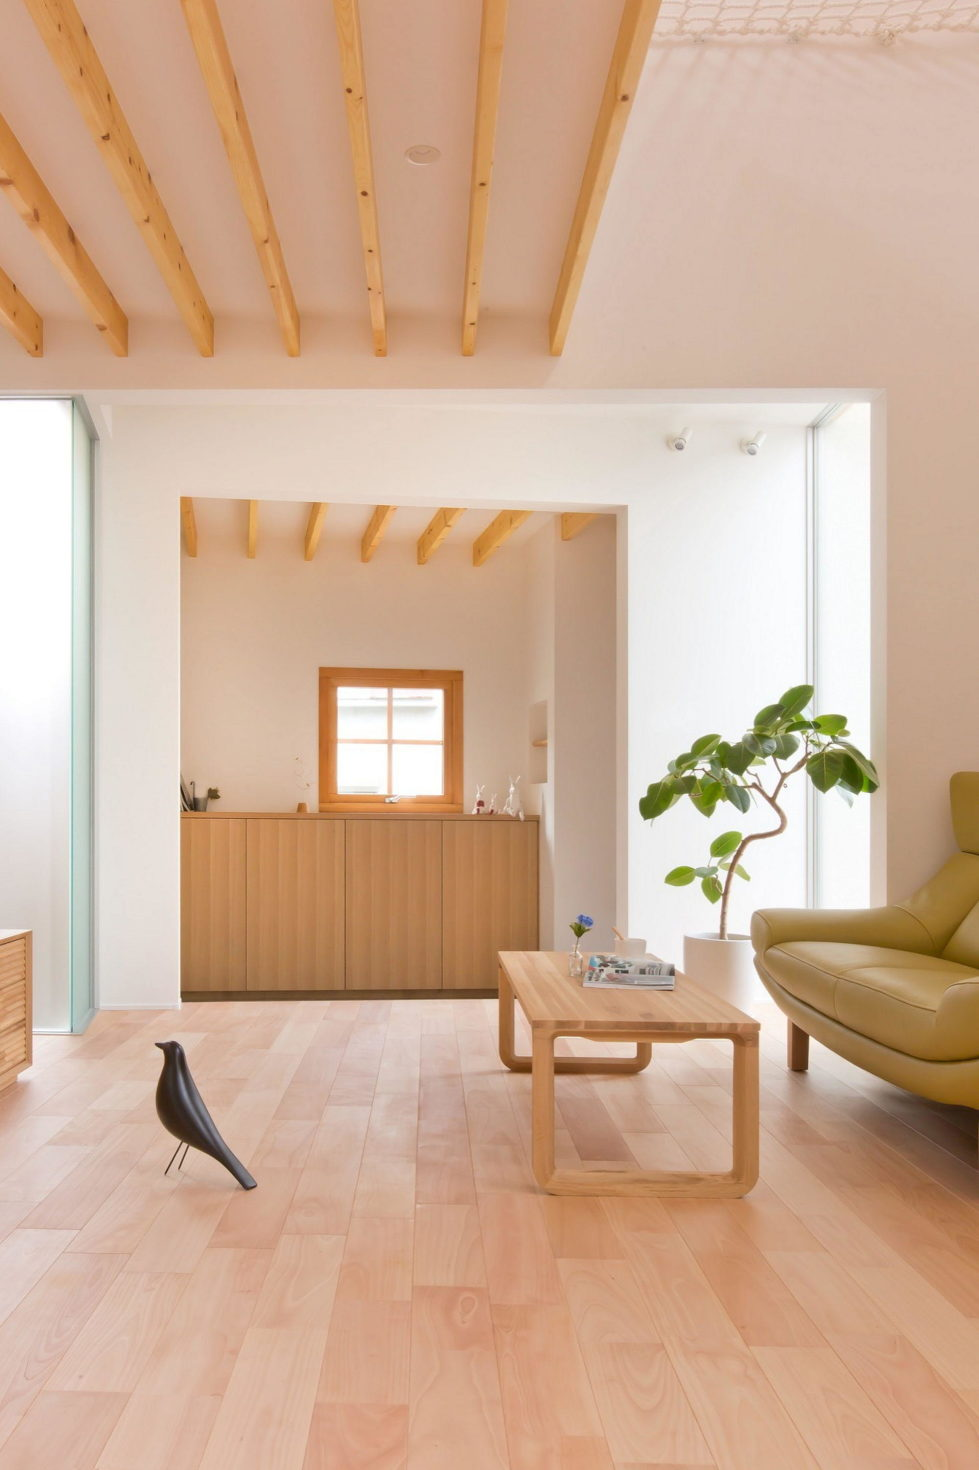 The House In Nipponese Minimalism In Kyoto By ALTS Design Office 6